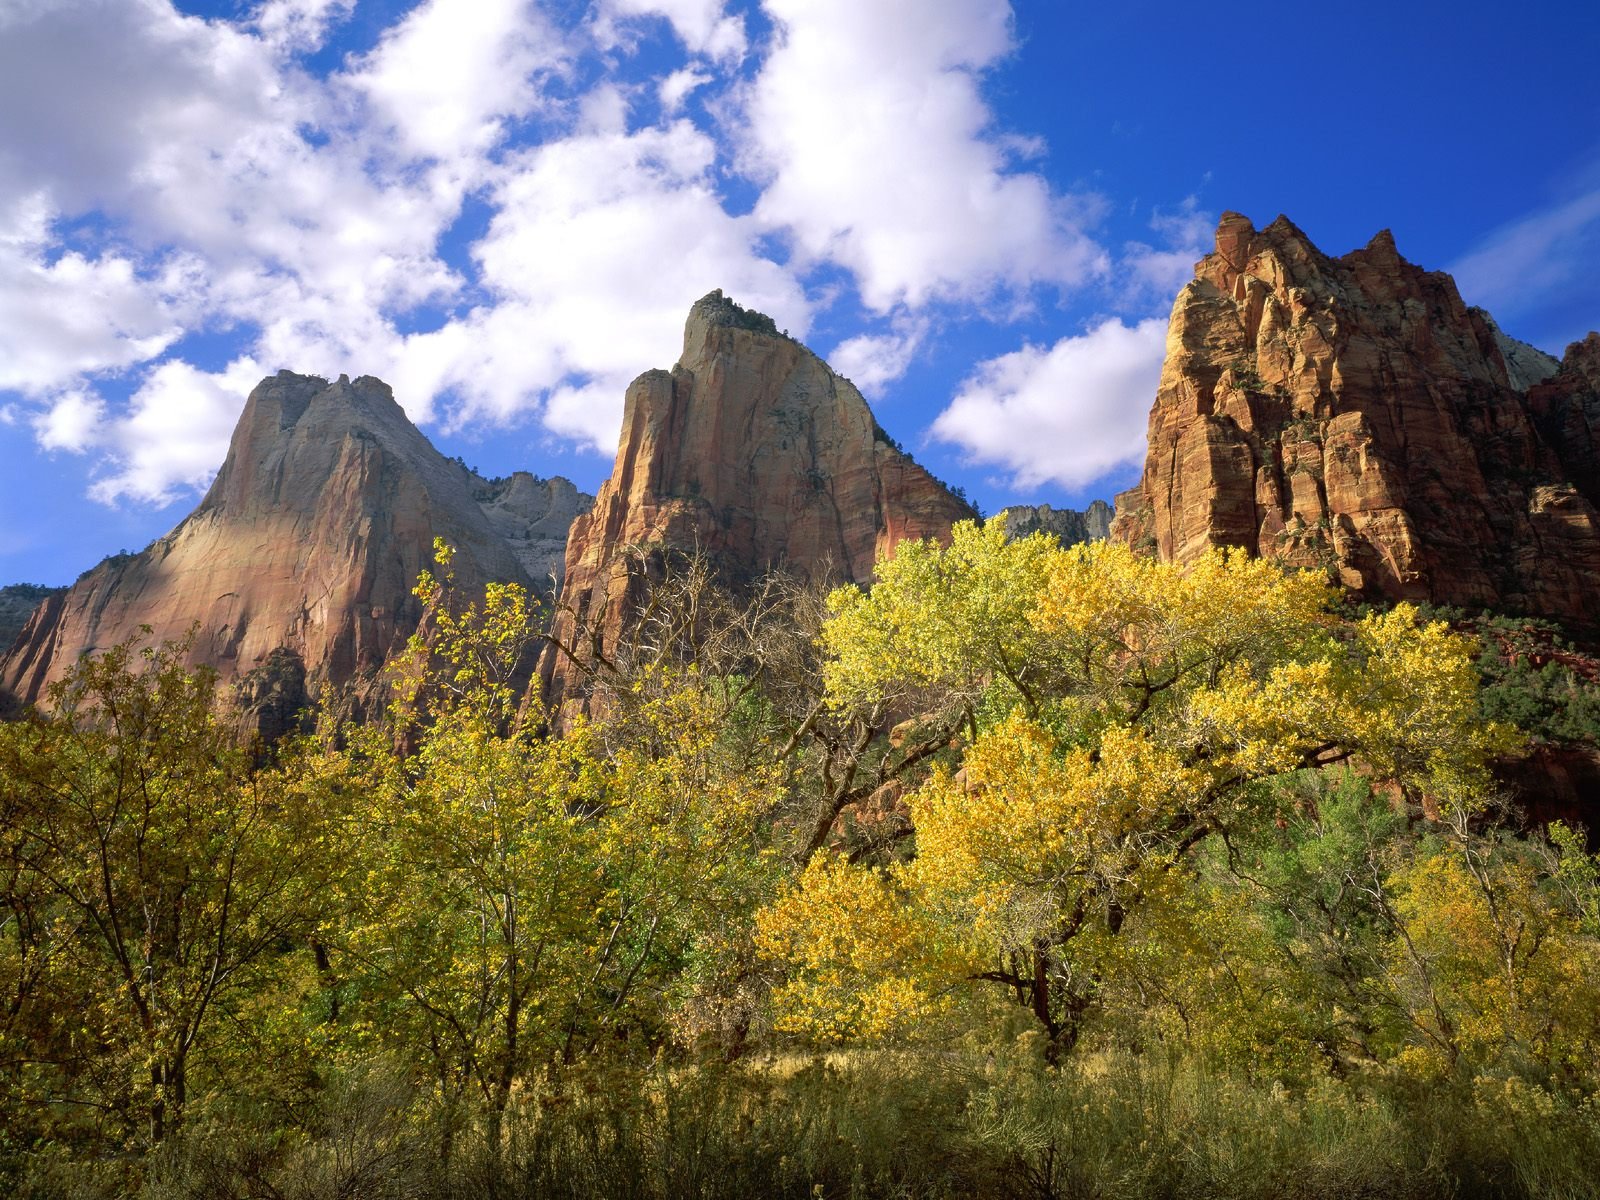 Three Patriarchs Zion National Park Wallpapers HD Wallpapers 1600x1200